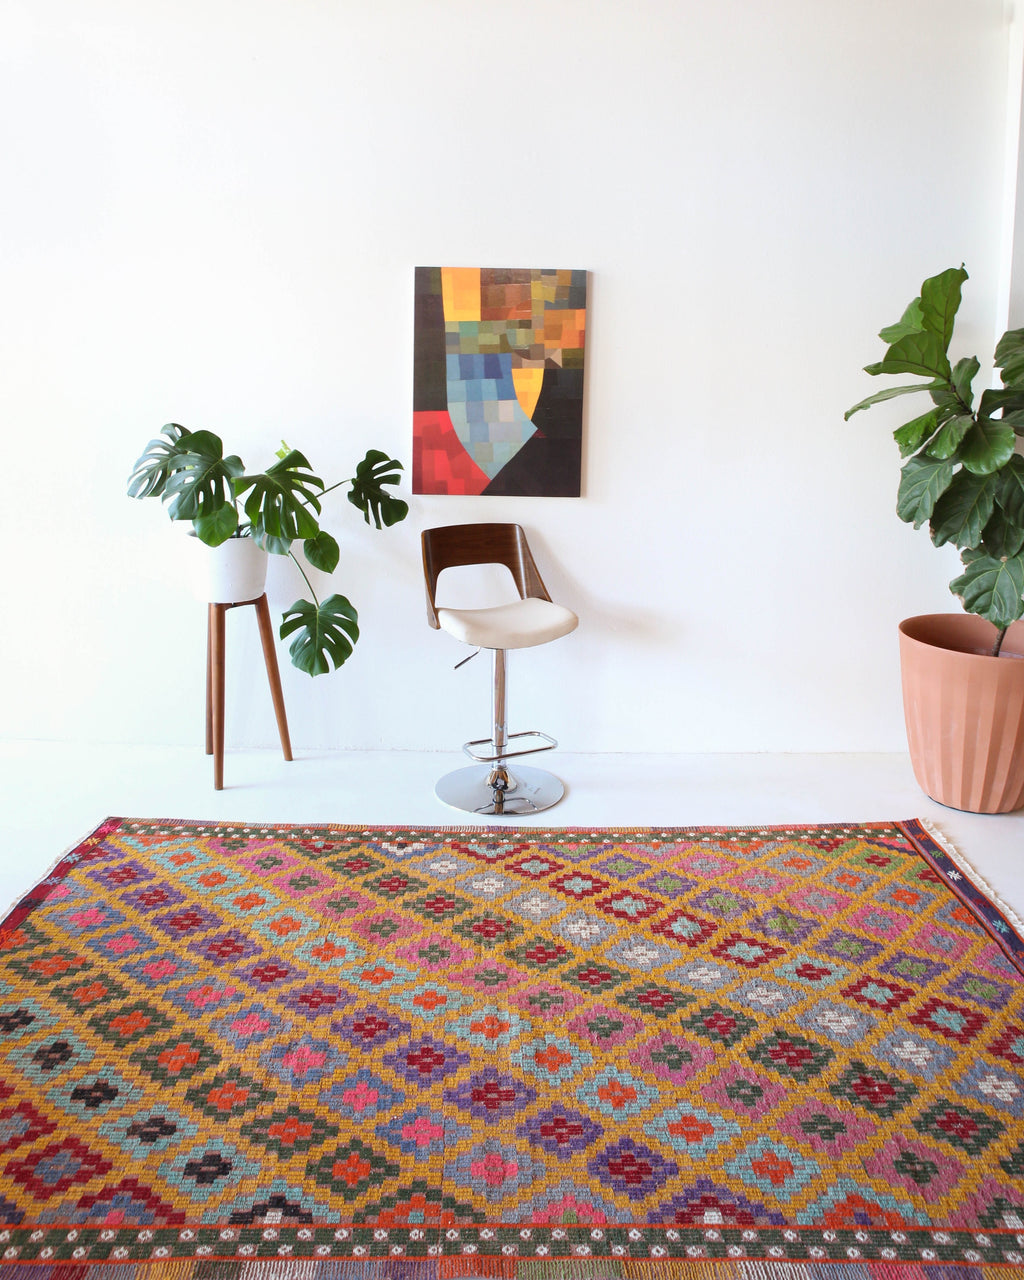 Vintage kilim rug in room decor setting, kilim, Turkish rug, vintage rug, portland, rug shop, bright colors, wild shaman, soft rug, bold color, Portland, Oregon, rug store, rug shop, local shop, antique rug